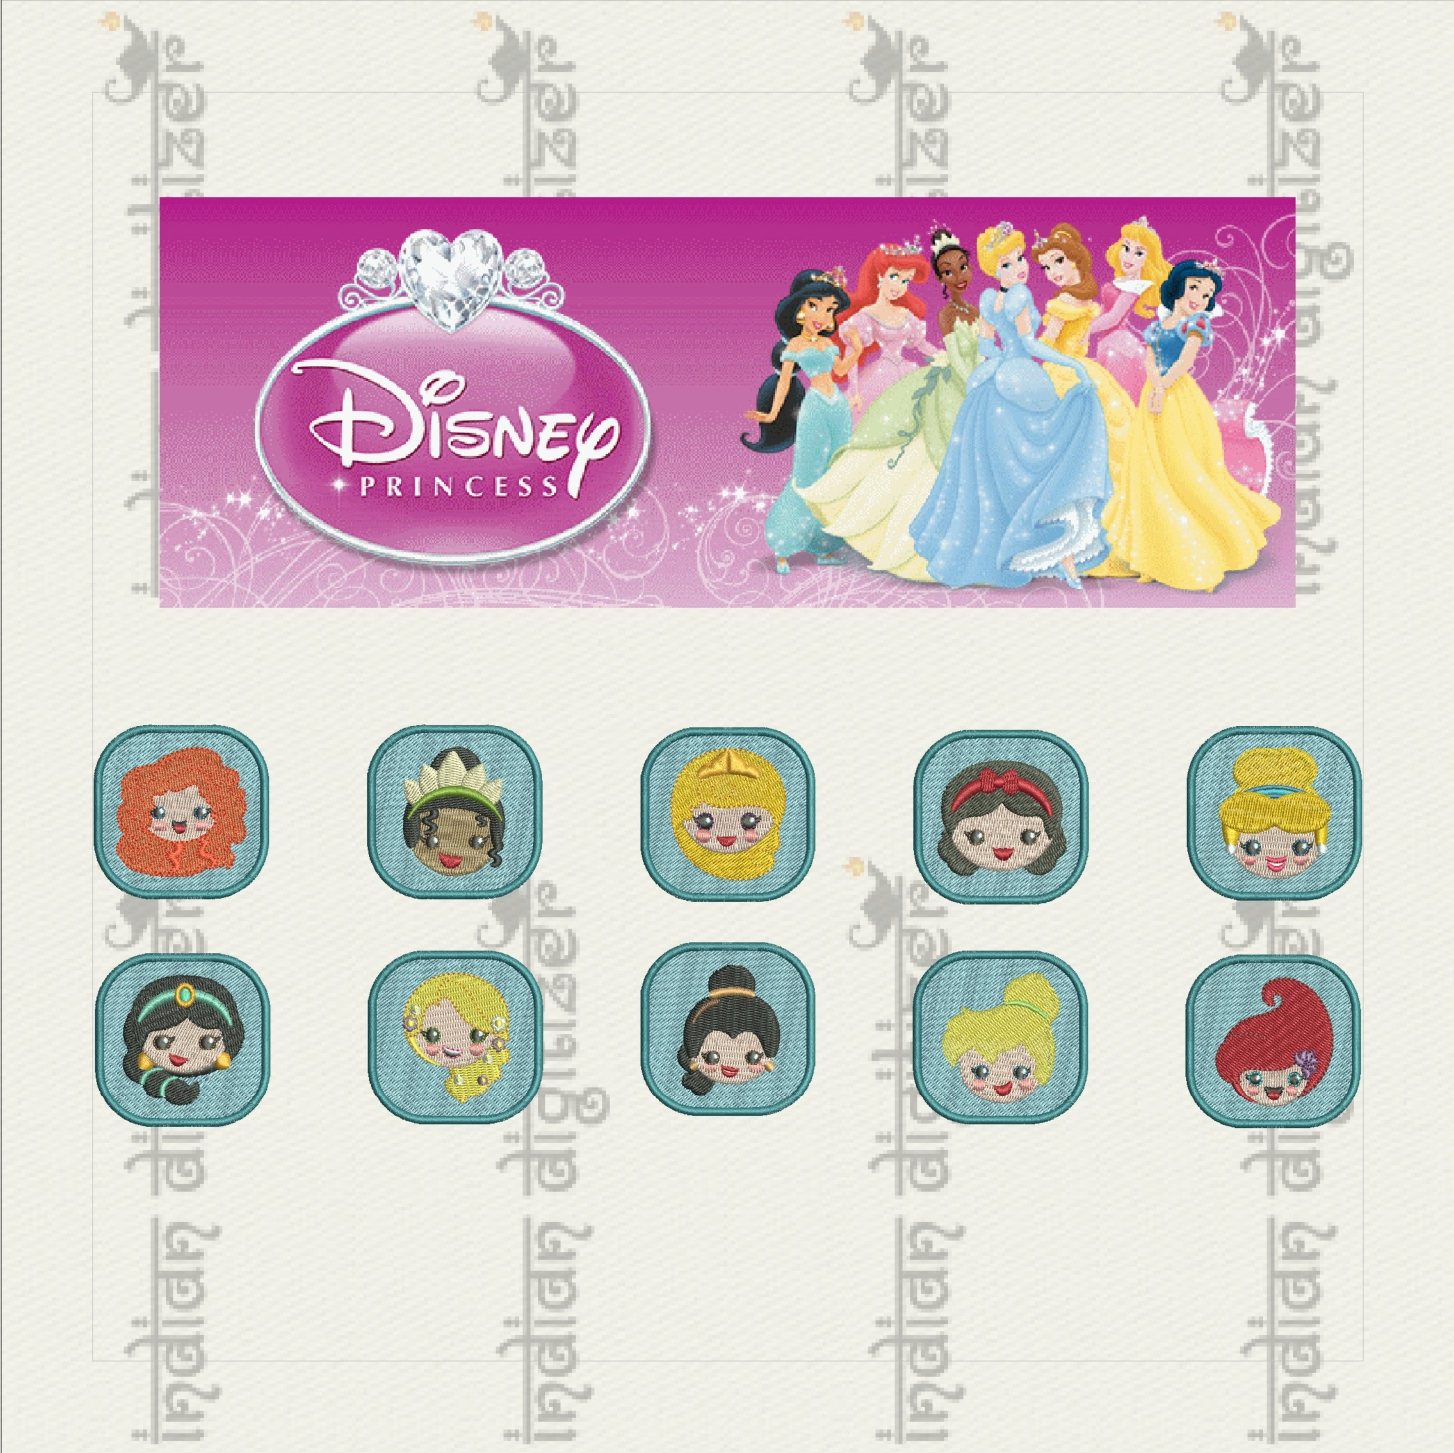 50% off on Disney Princess Emojis machine embroidery designs for 4in hoop - 10 resizable designs for key fobs, tshirts, hats, towels, bibs.